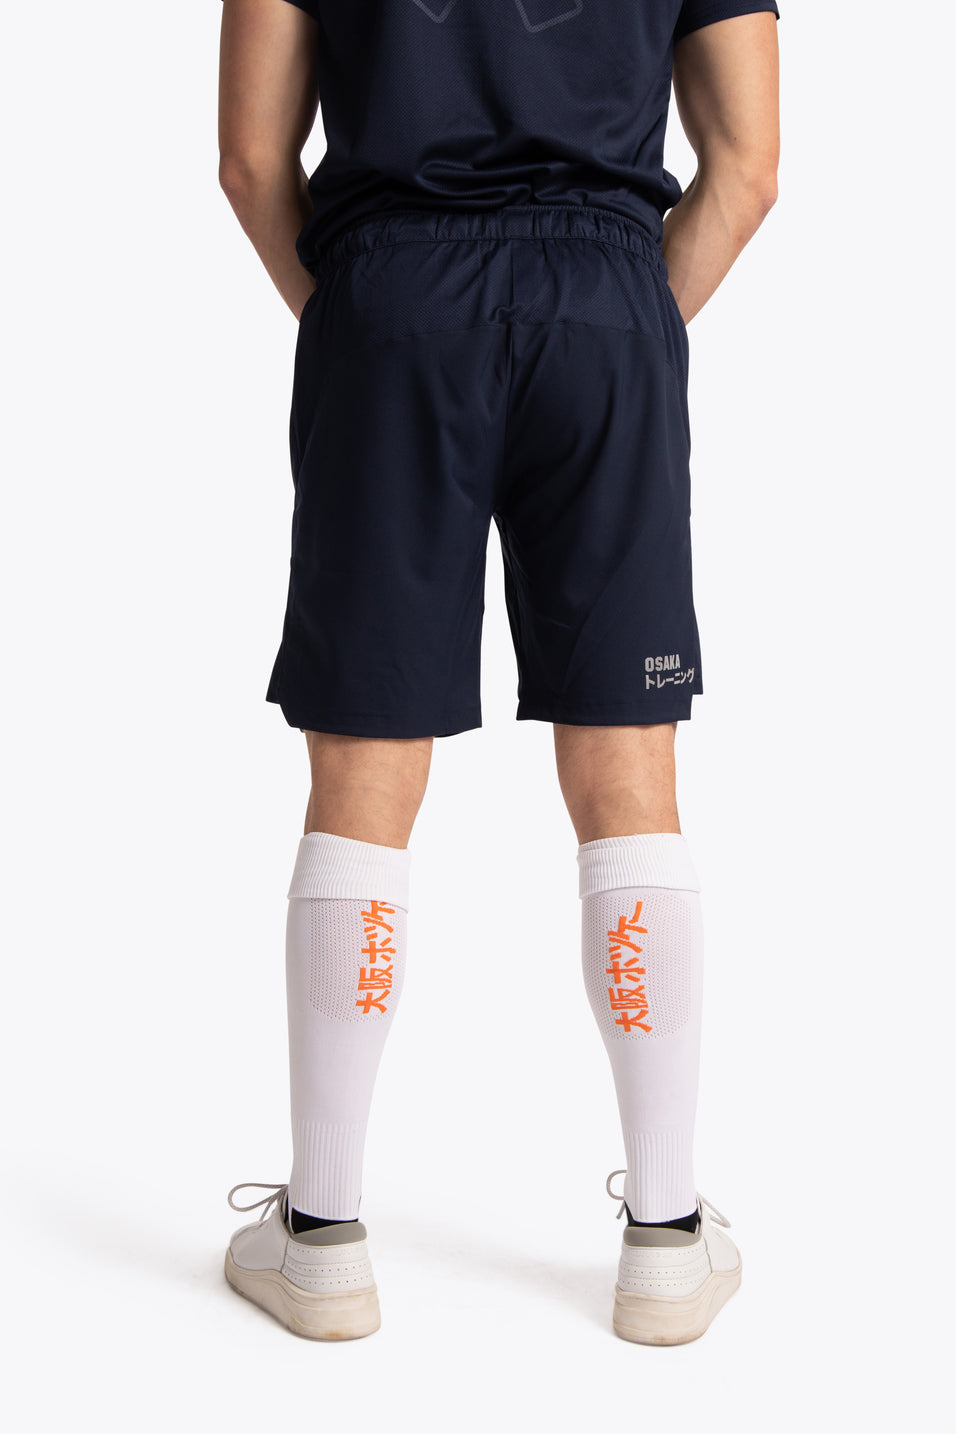 HC Bloemendaal Men Short - Navy